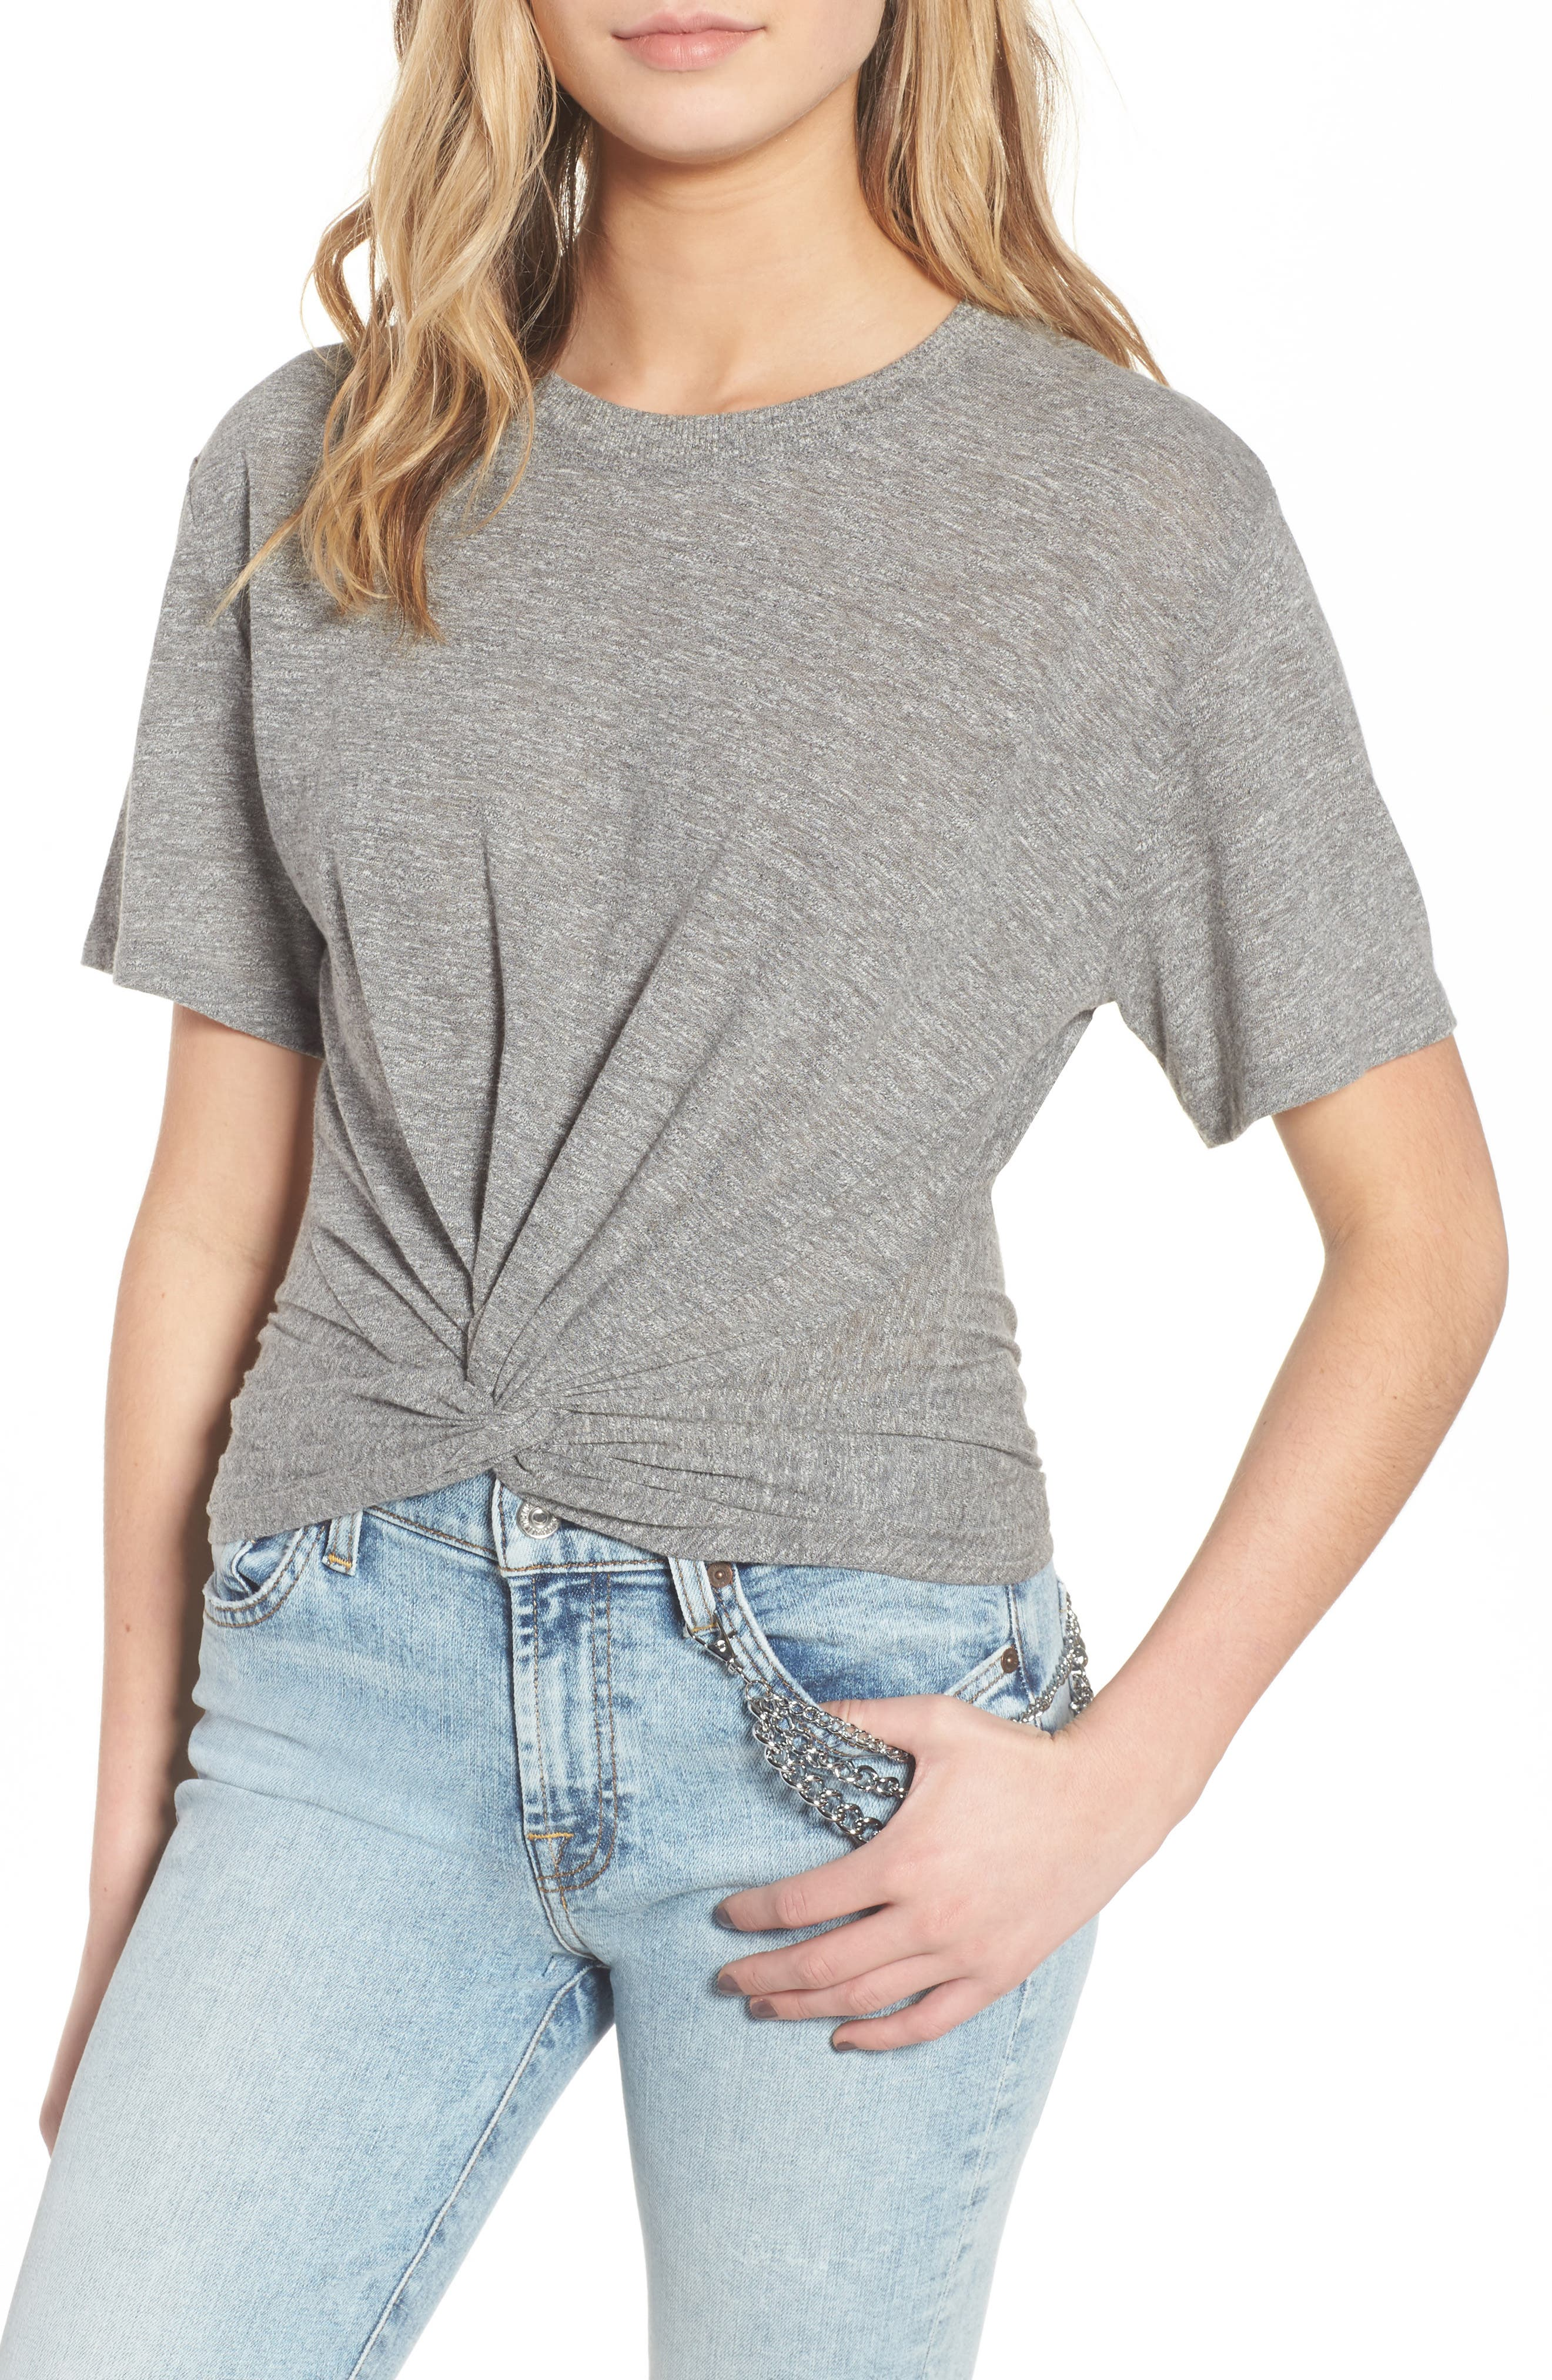 Alternate Image 1 Selected - 7 For All Mankind® Knotted Tee